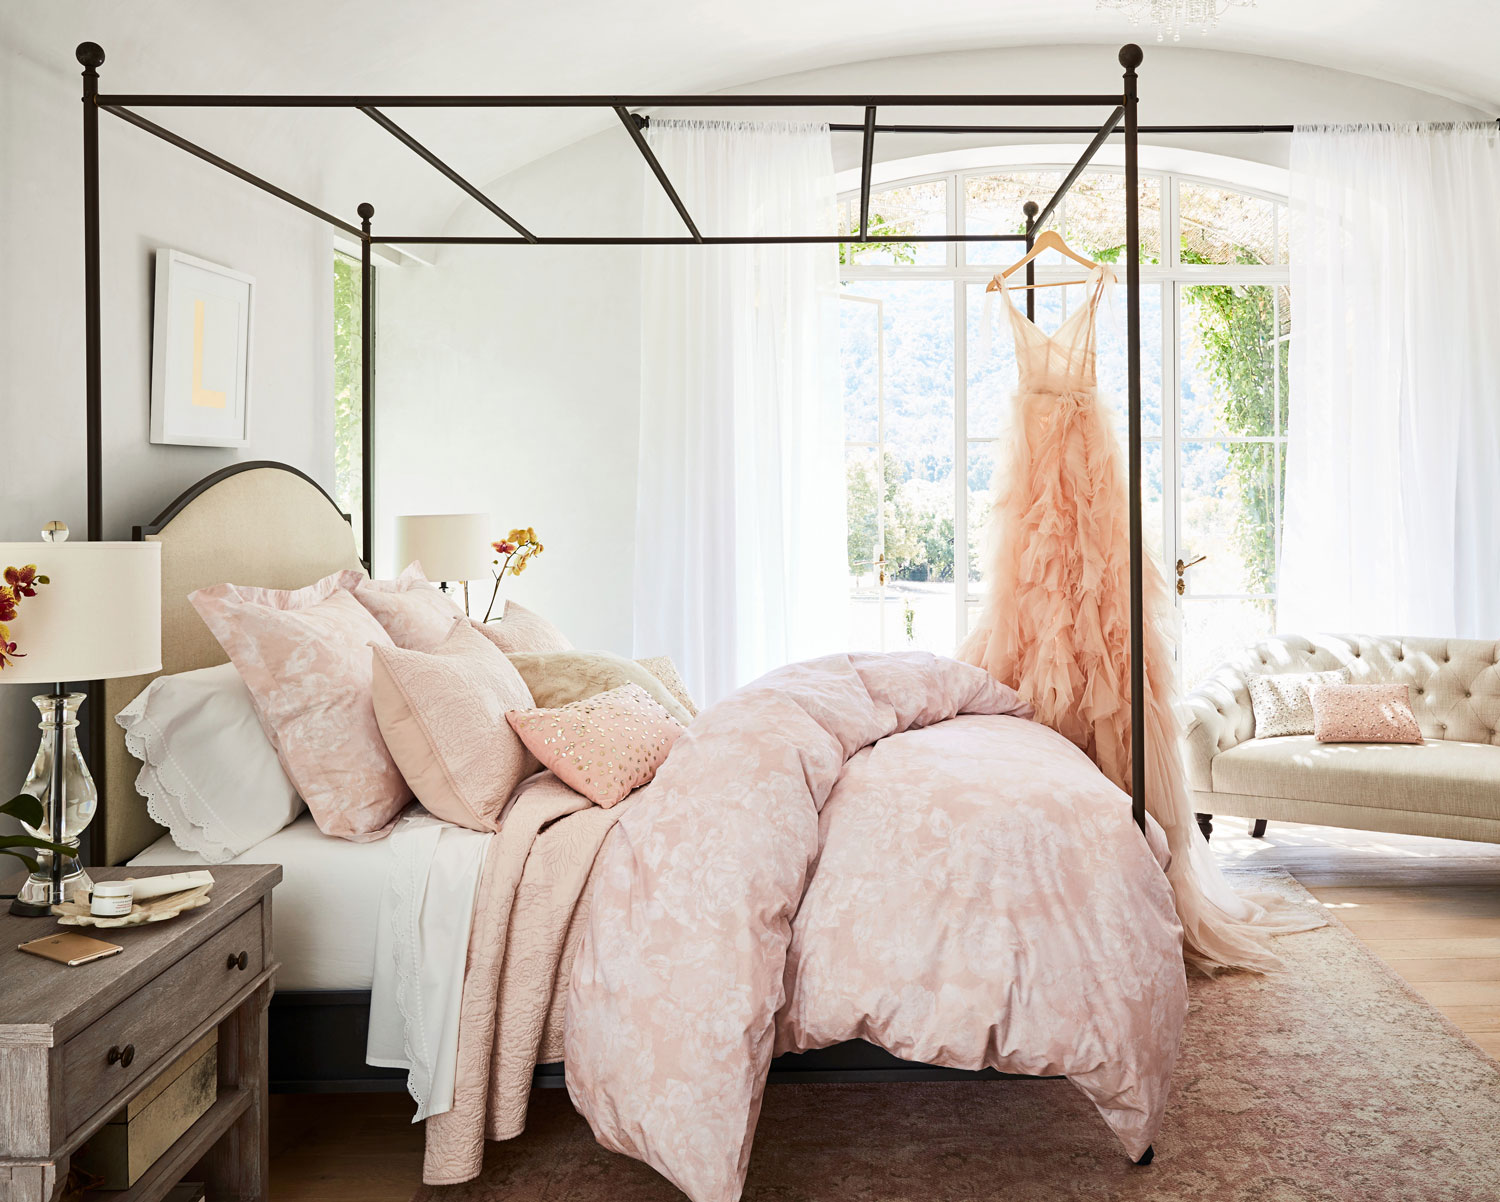 Monique Lhuillier for Pottery Barn collection bedding